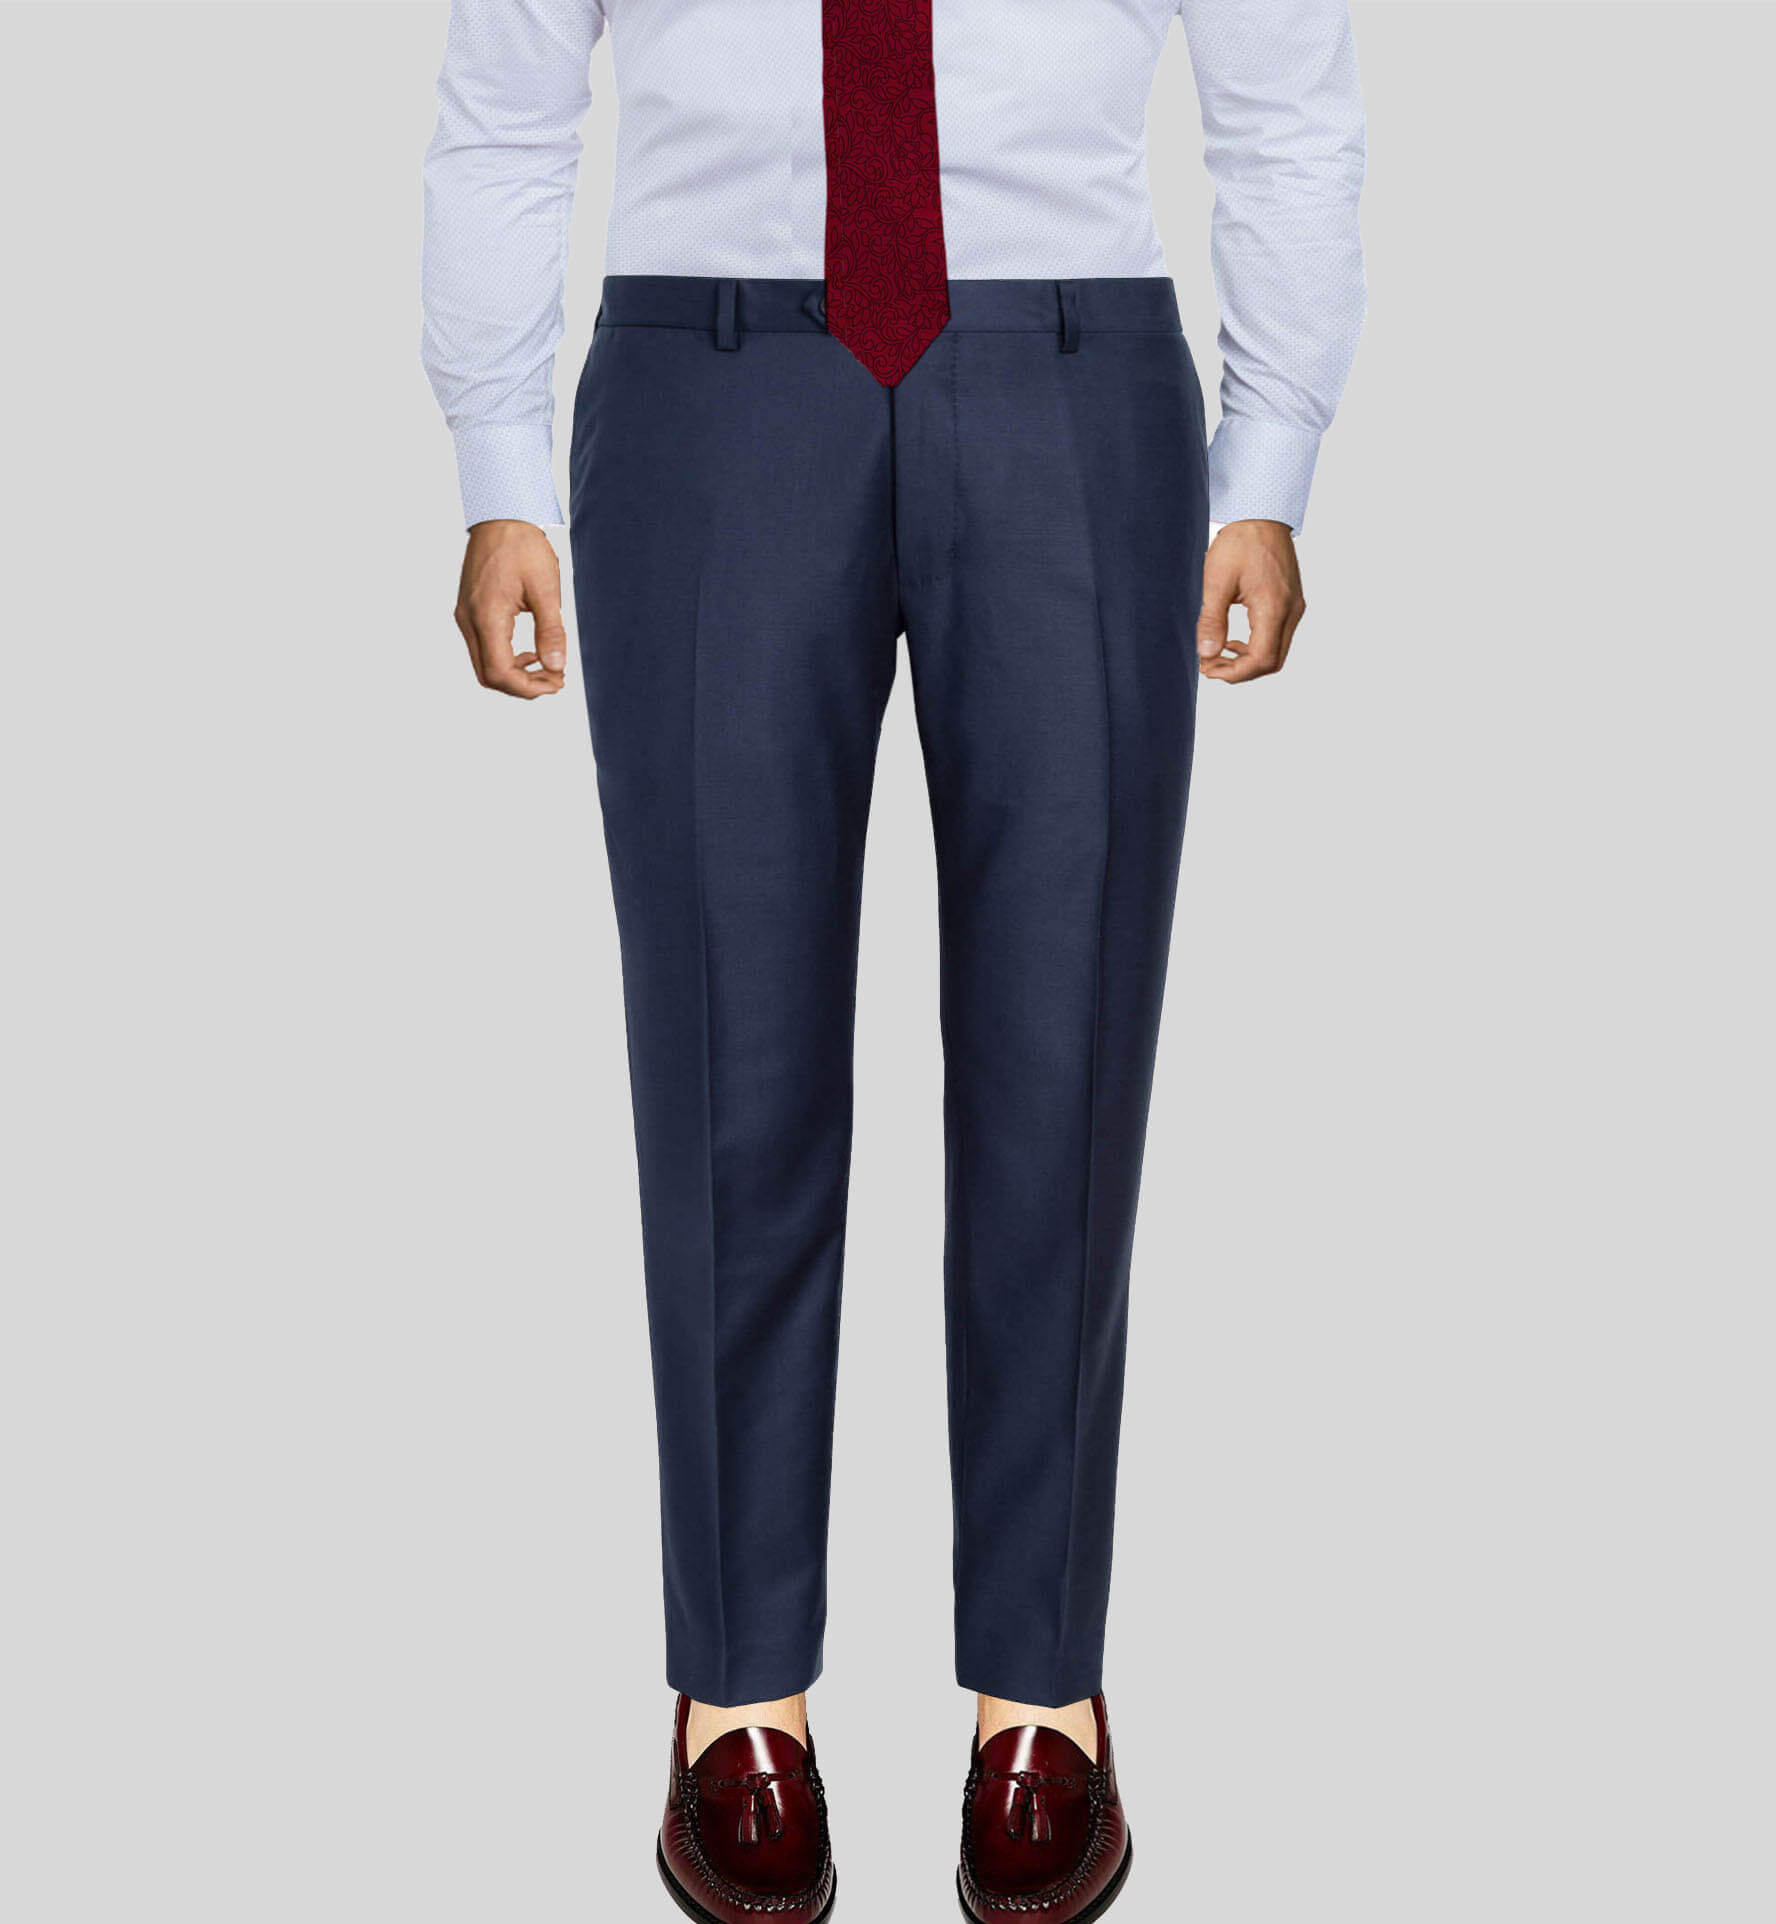 Light Navy Men's Pant Vitale Berberis Dress